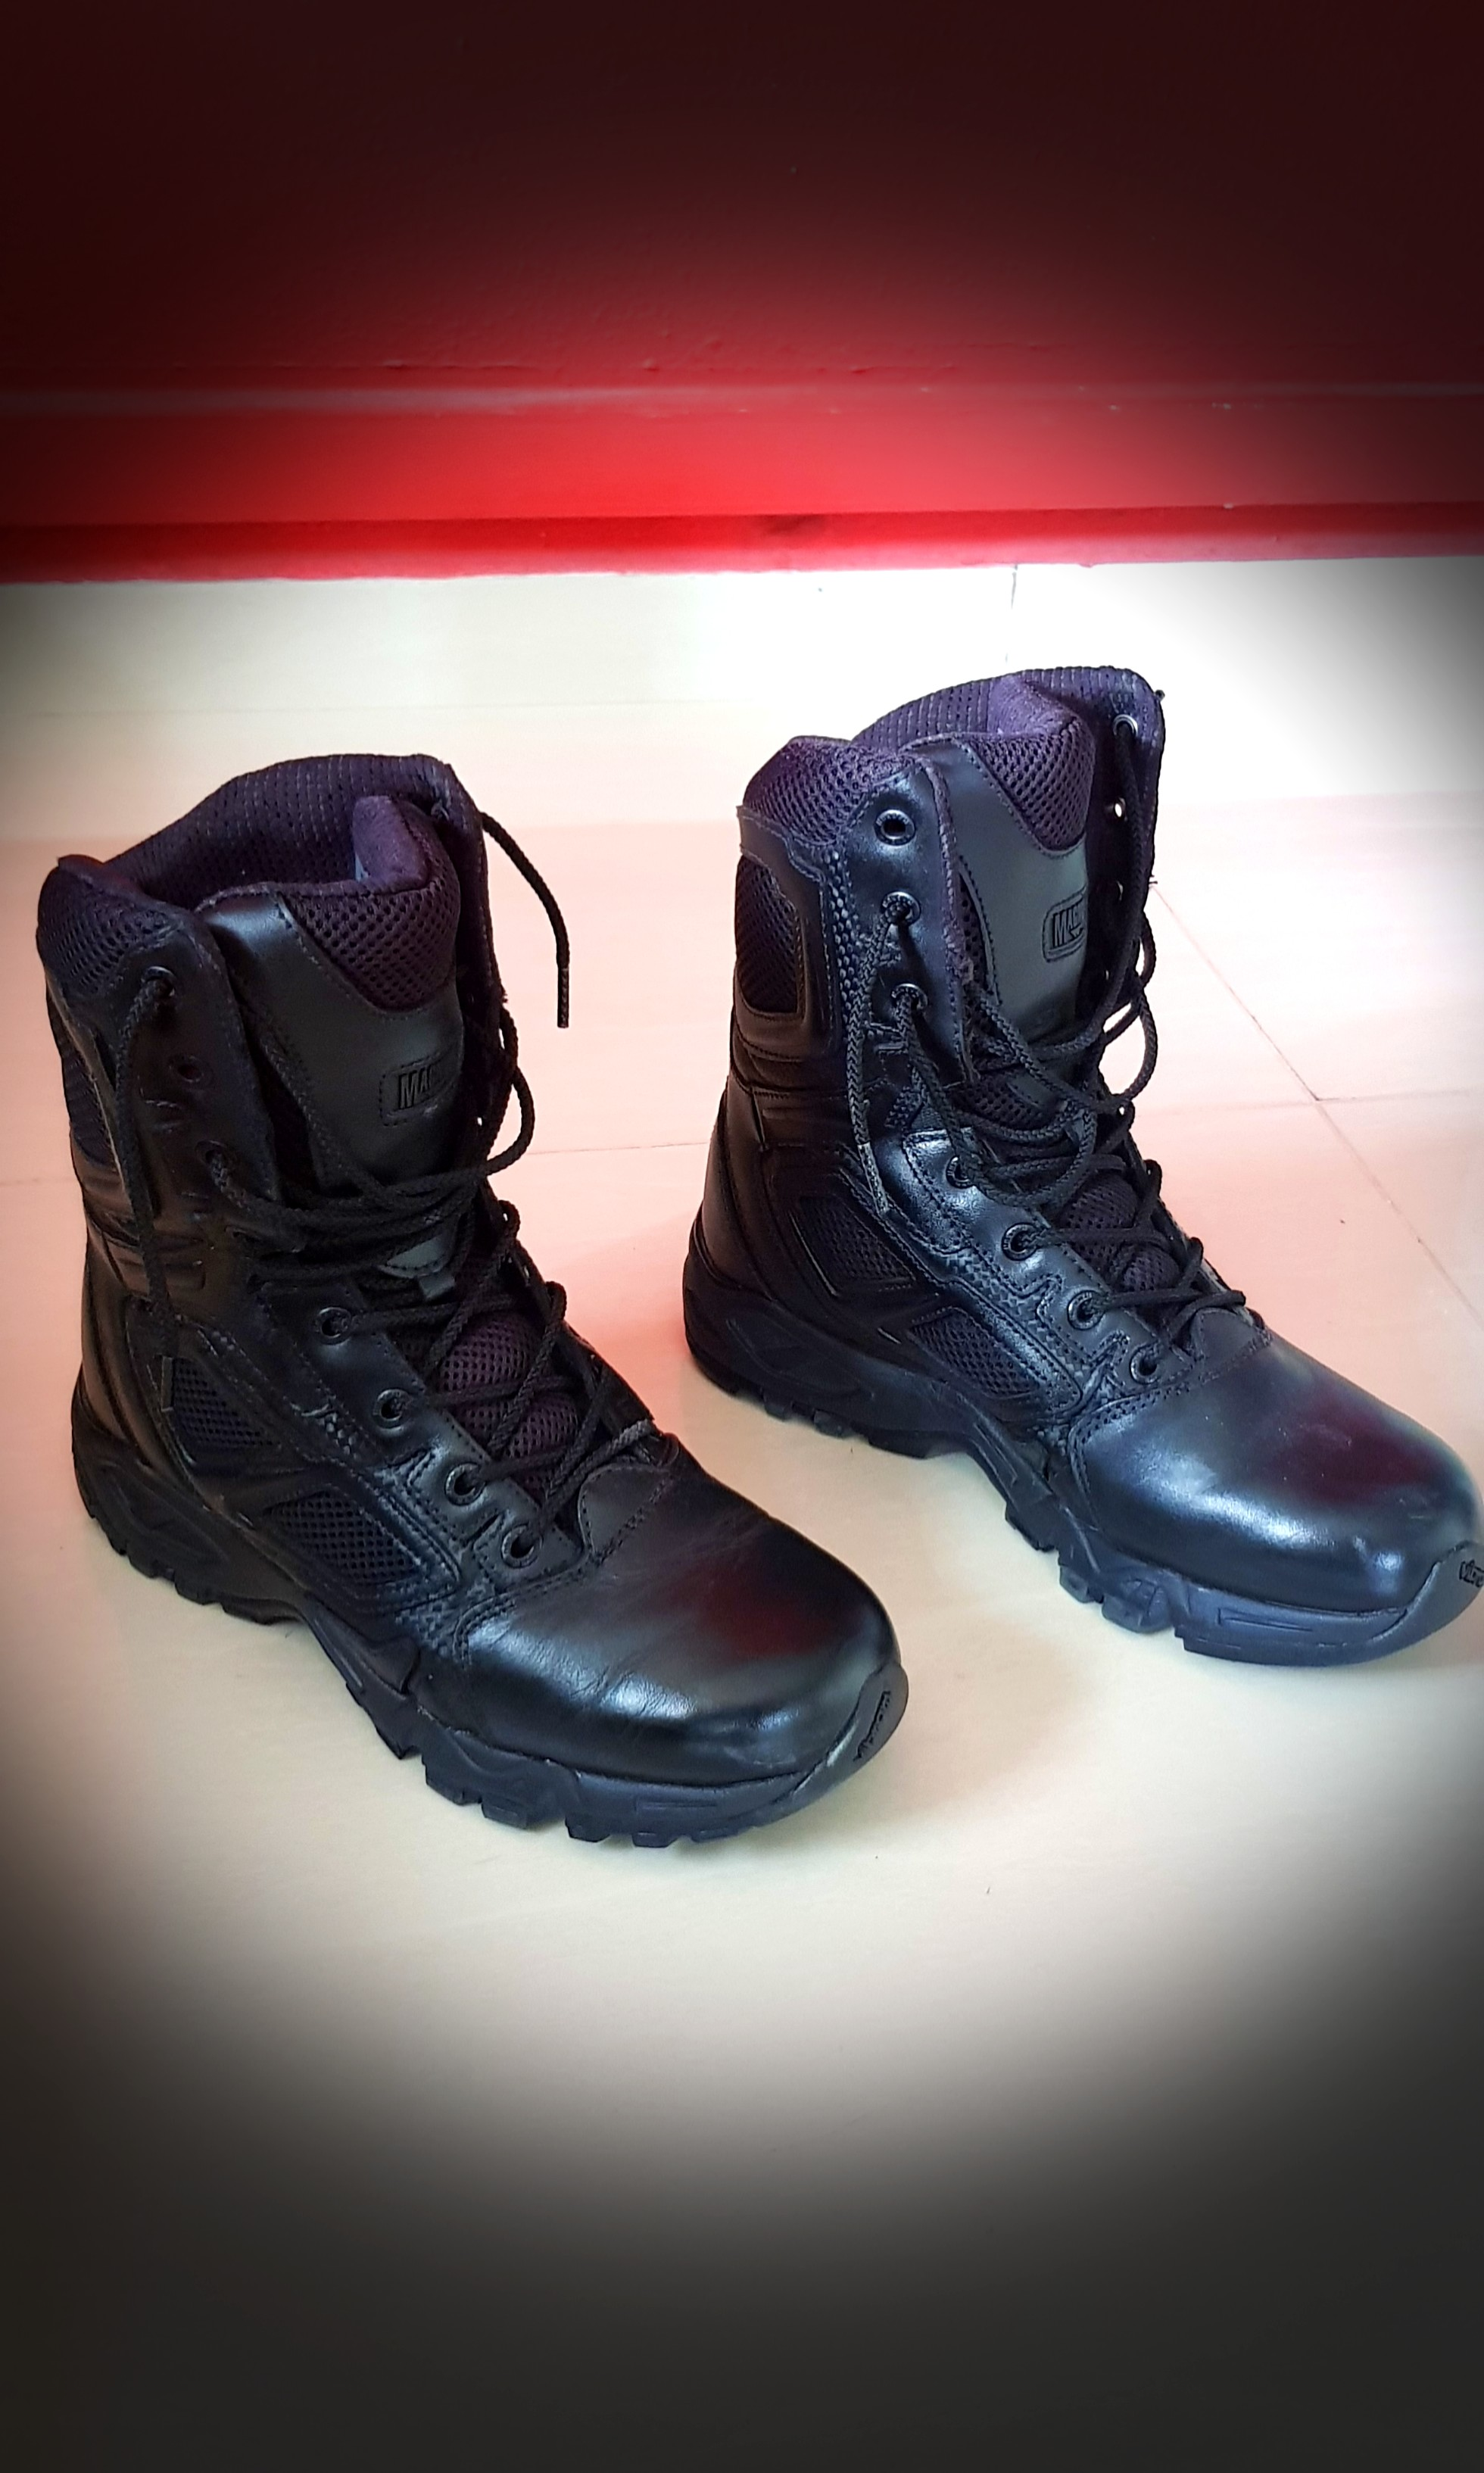 7a24a49fb9a Magnum Elite Spider 8.0 Tactical Boots (used 1 time only!)